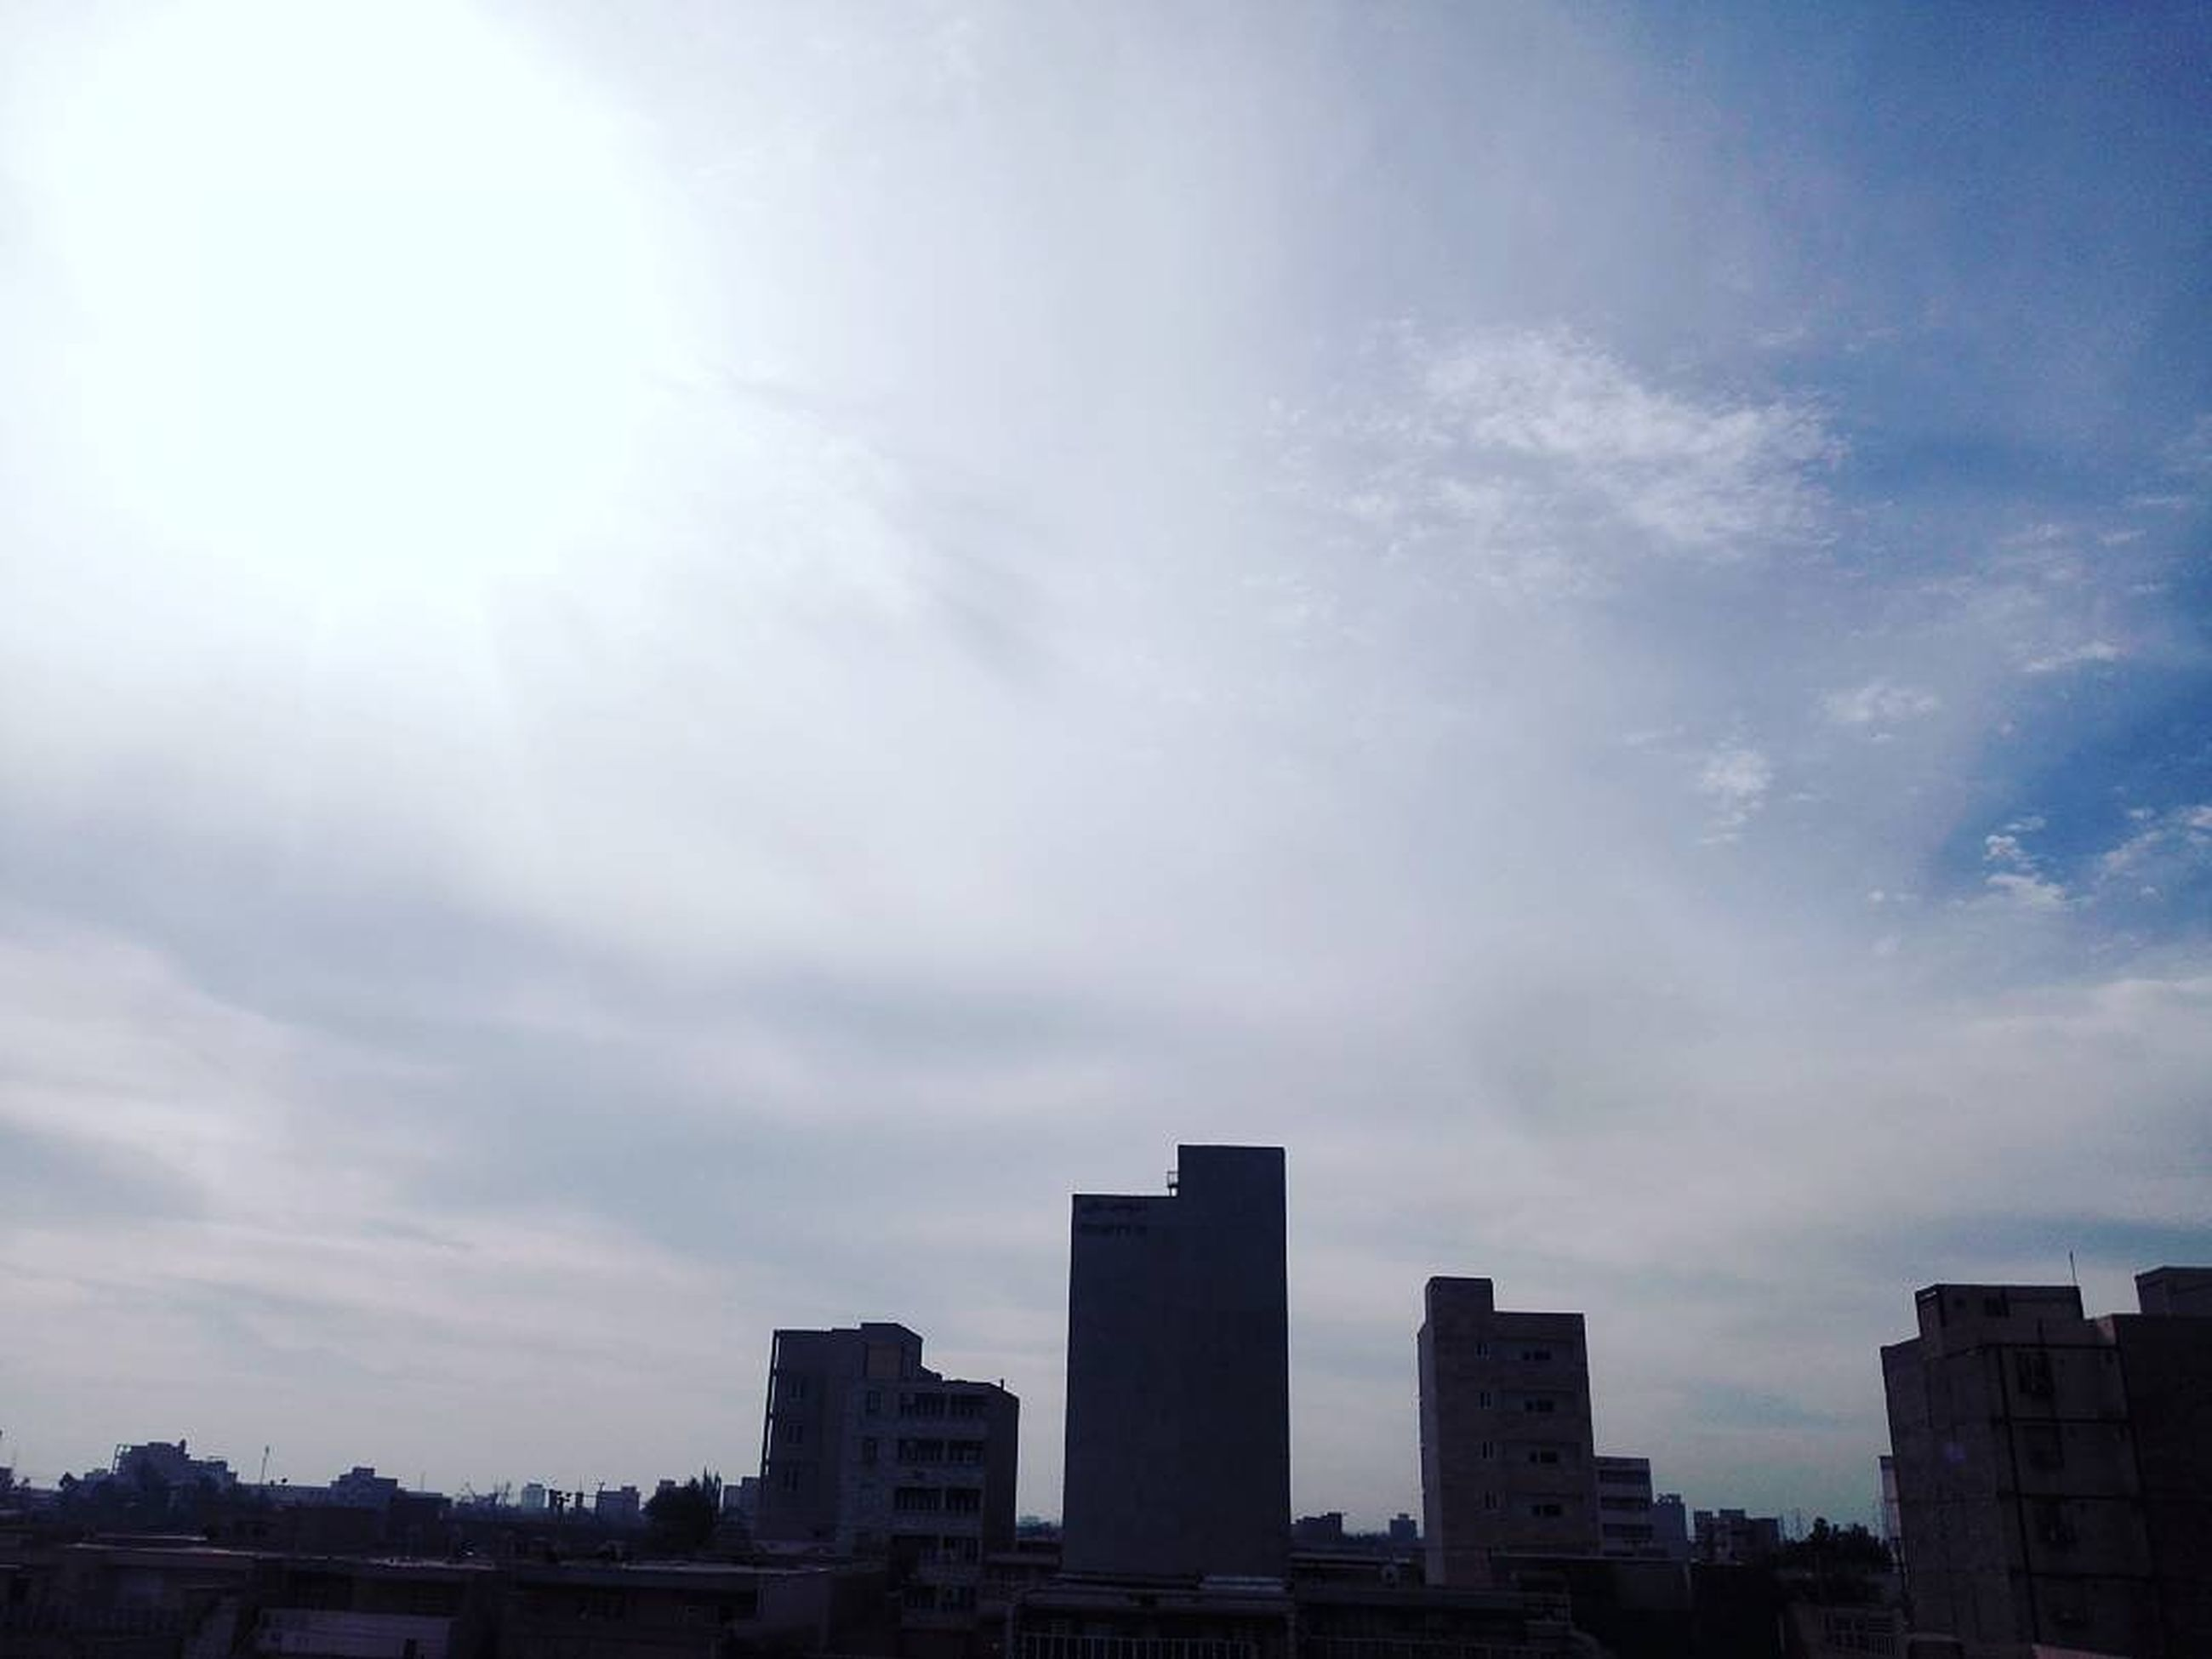 architecture, sky, urban skyline, building exterior, city, cityscape, skyscraper, no people, cloud - sky, outdoors, downtown district, day